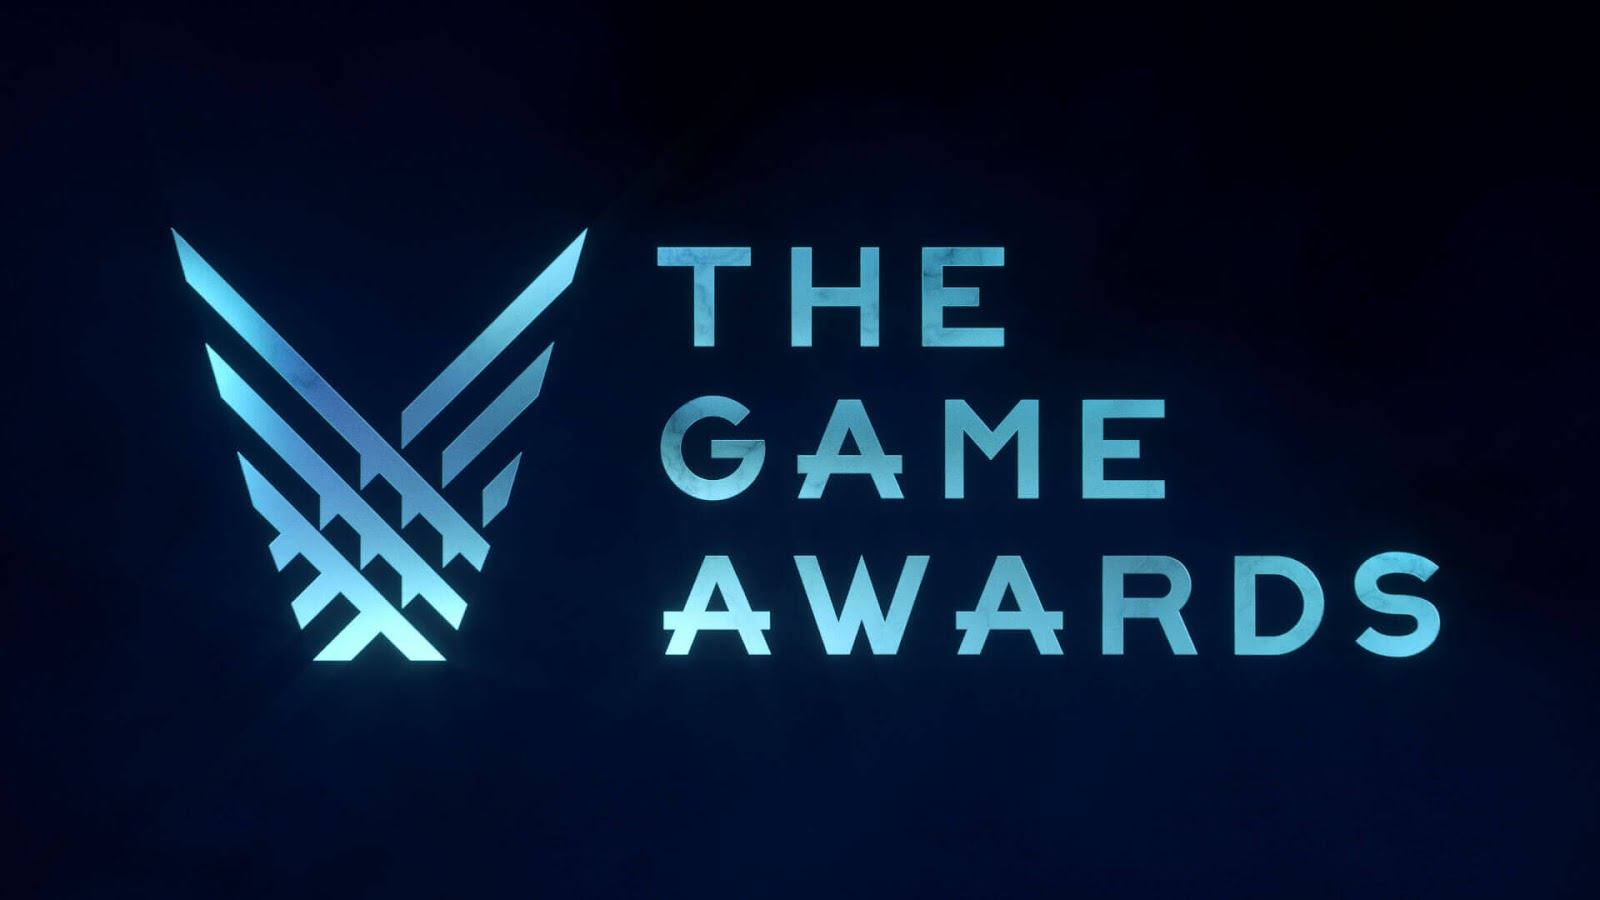 10 New Games Will Be Announced In The Game Awards 2018